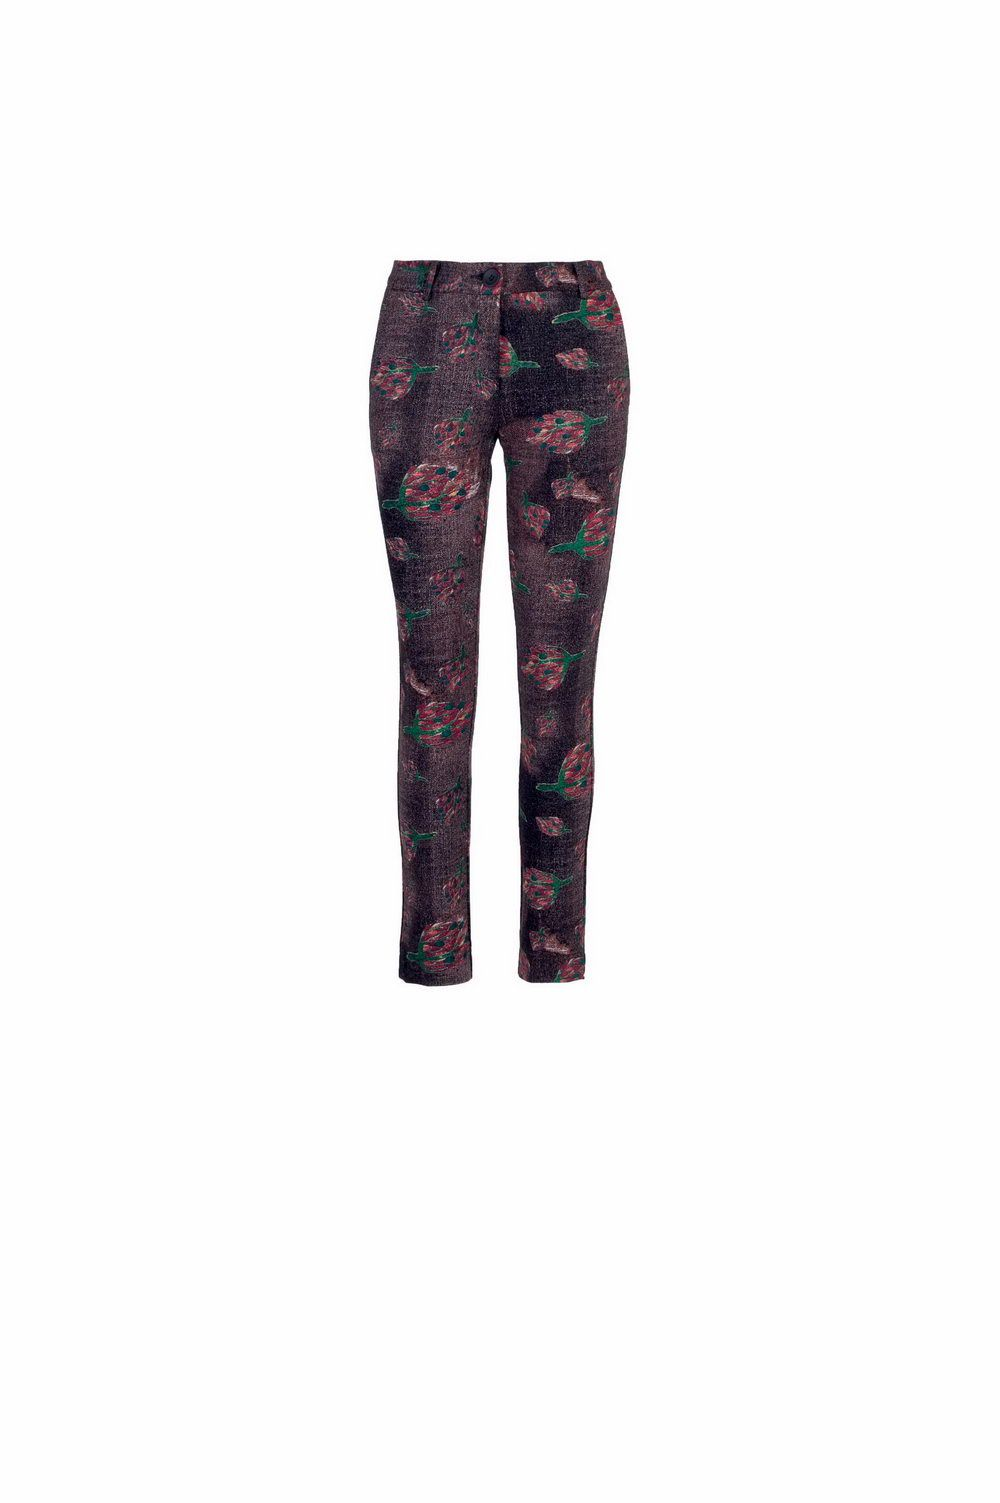 AnonymeDesigners_R139FP075 - Trouses - PVP 120,60€_resize